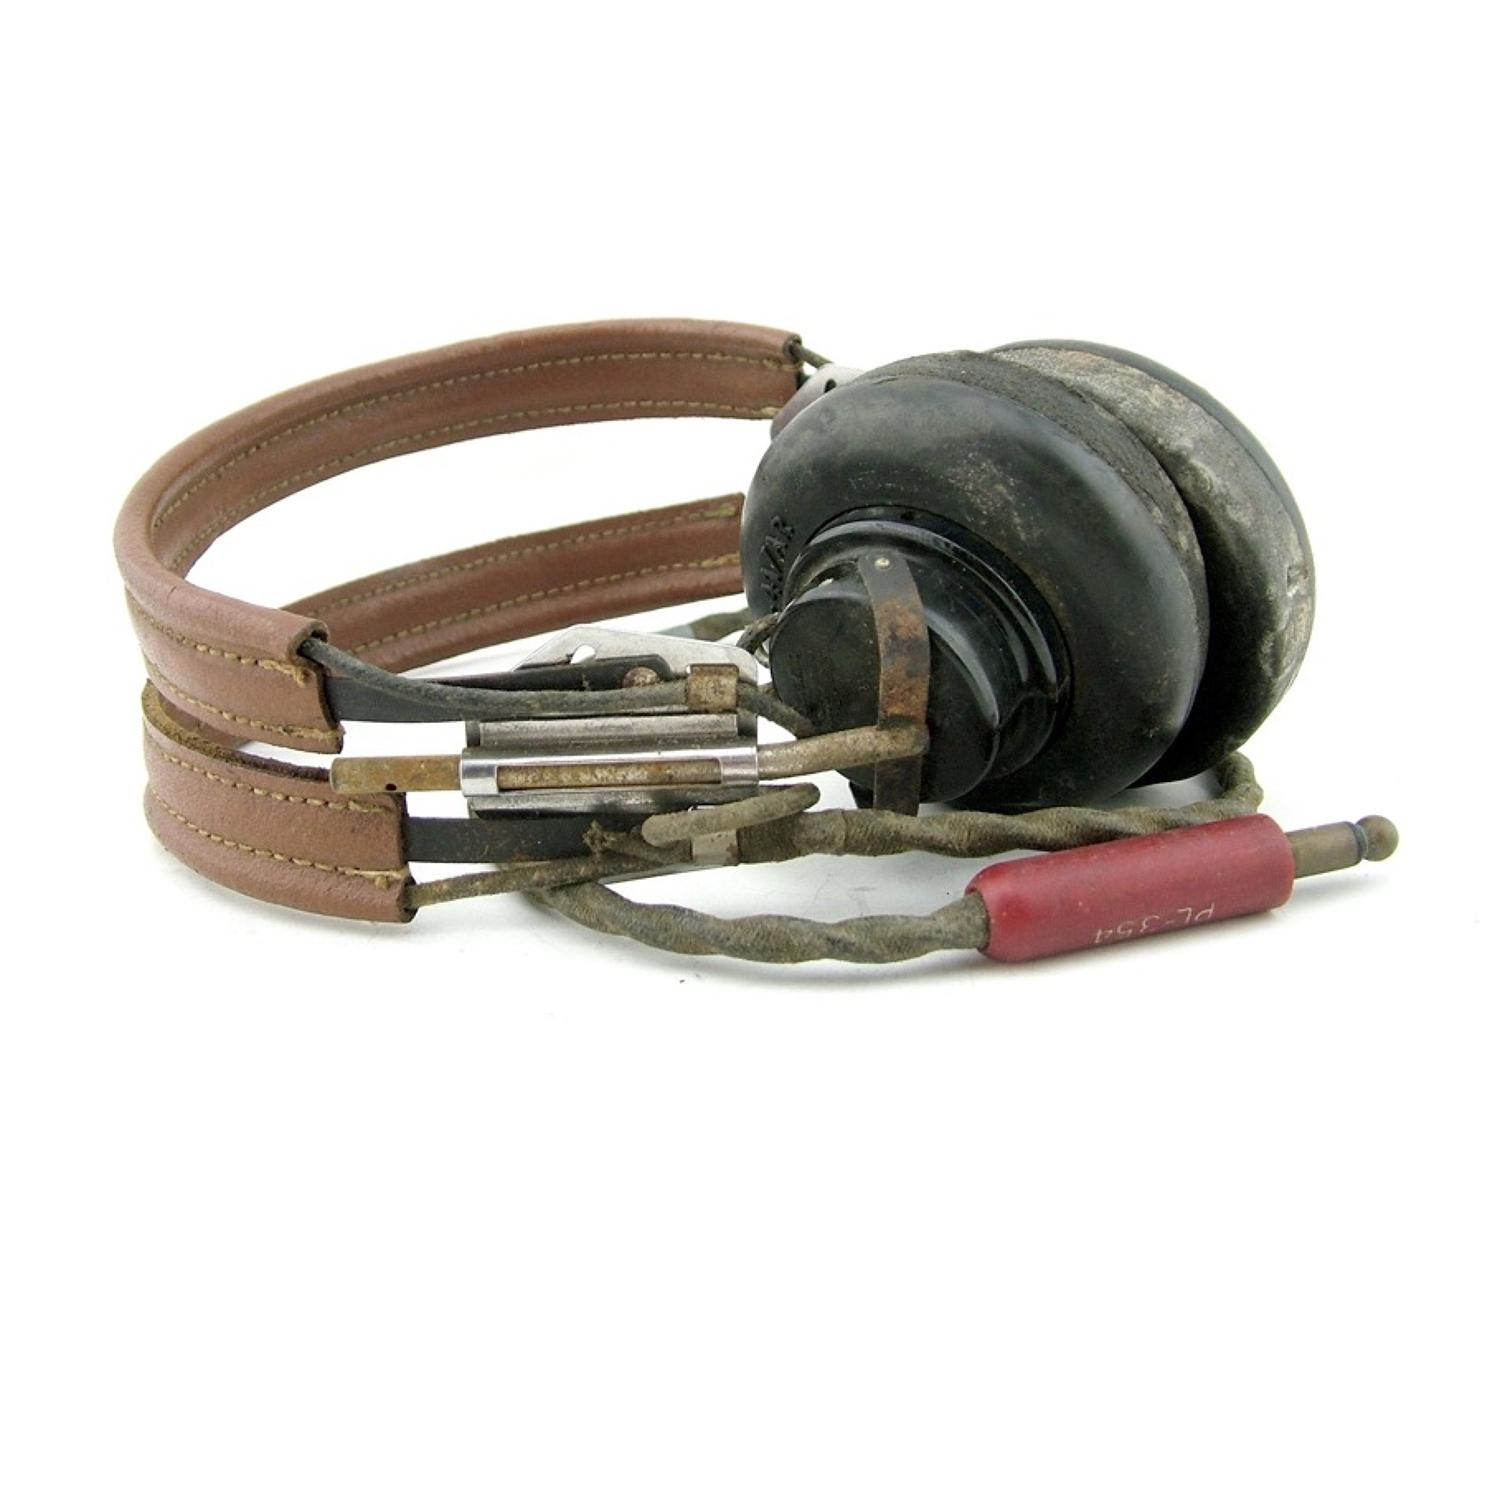 USAAF headset type HS-33